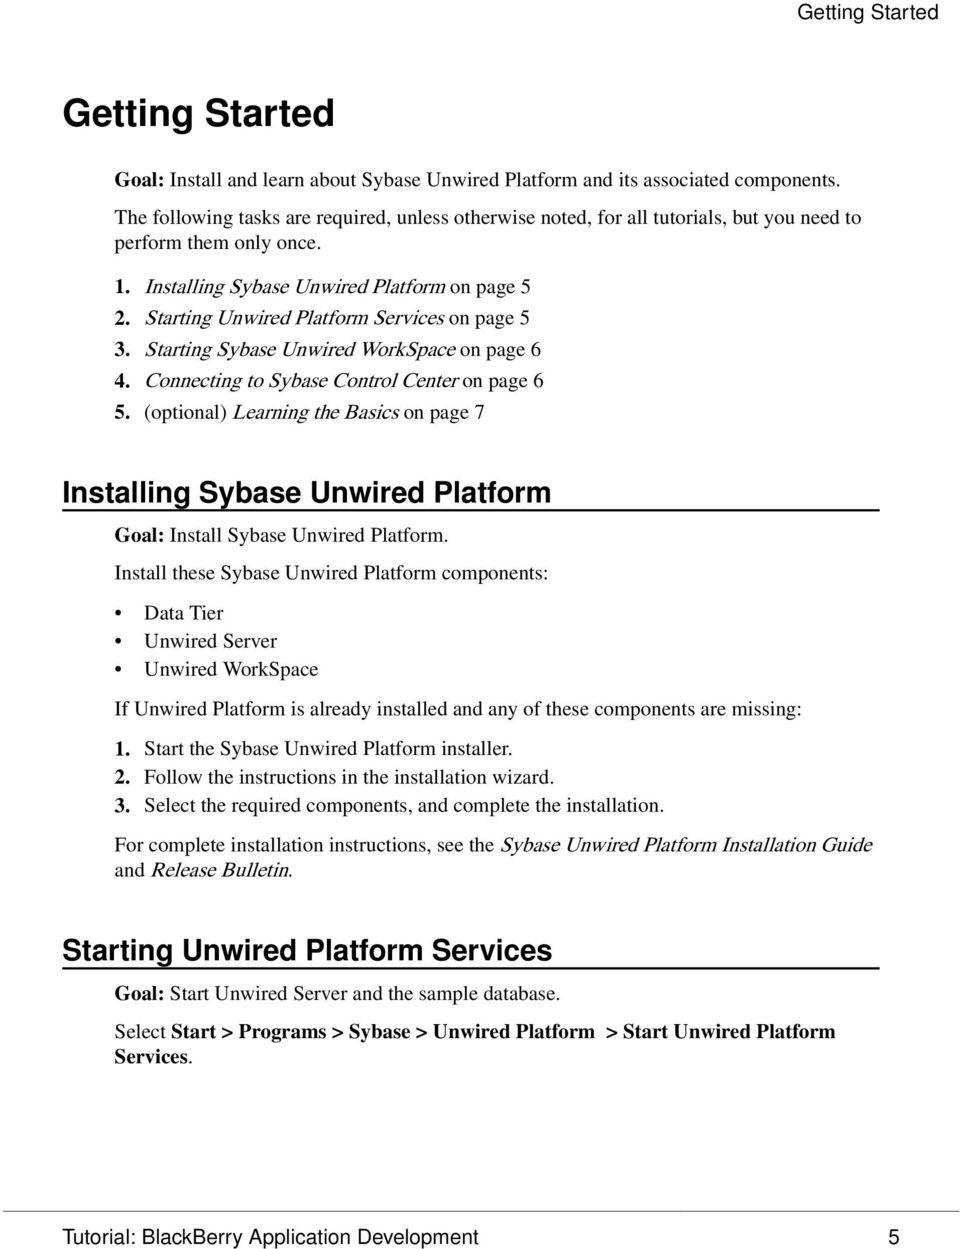 Starting Unwired Platform Services on page 5 3. Starting Sybase Unwired WorkSpace on page 6 4. Connecting to Sybase Control Center on page 6 5.